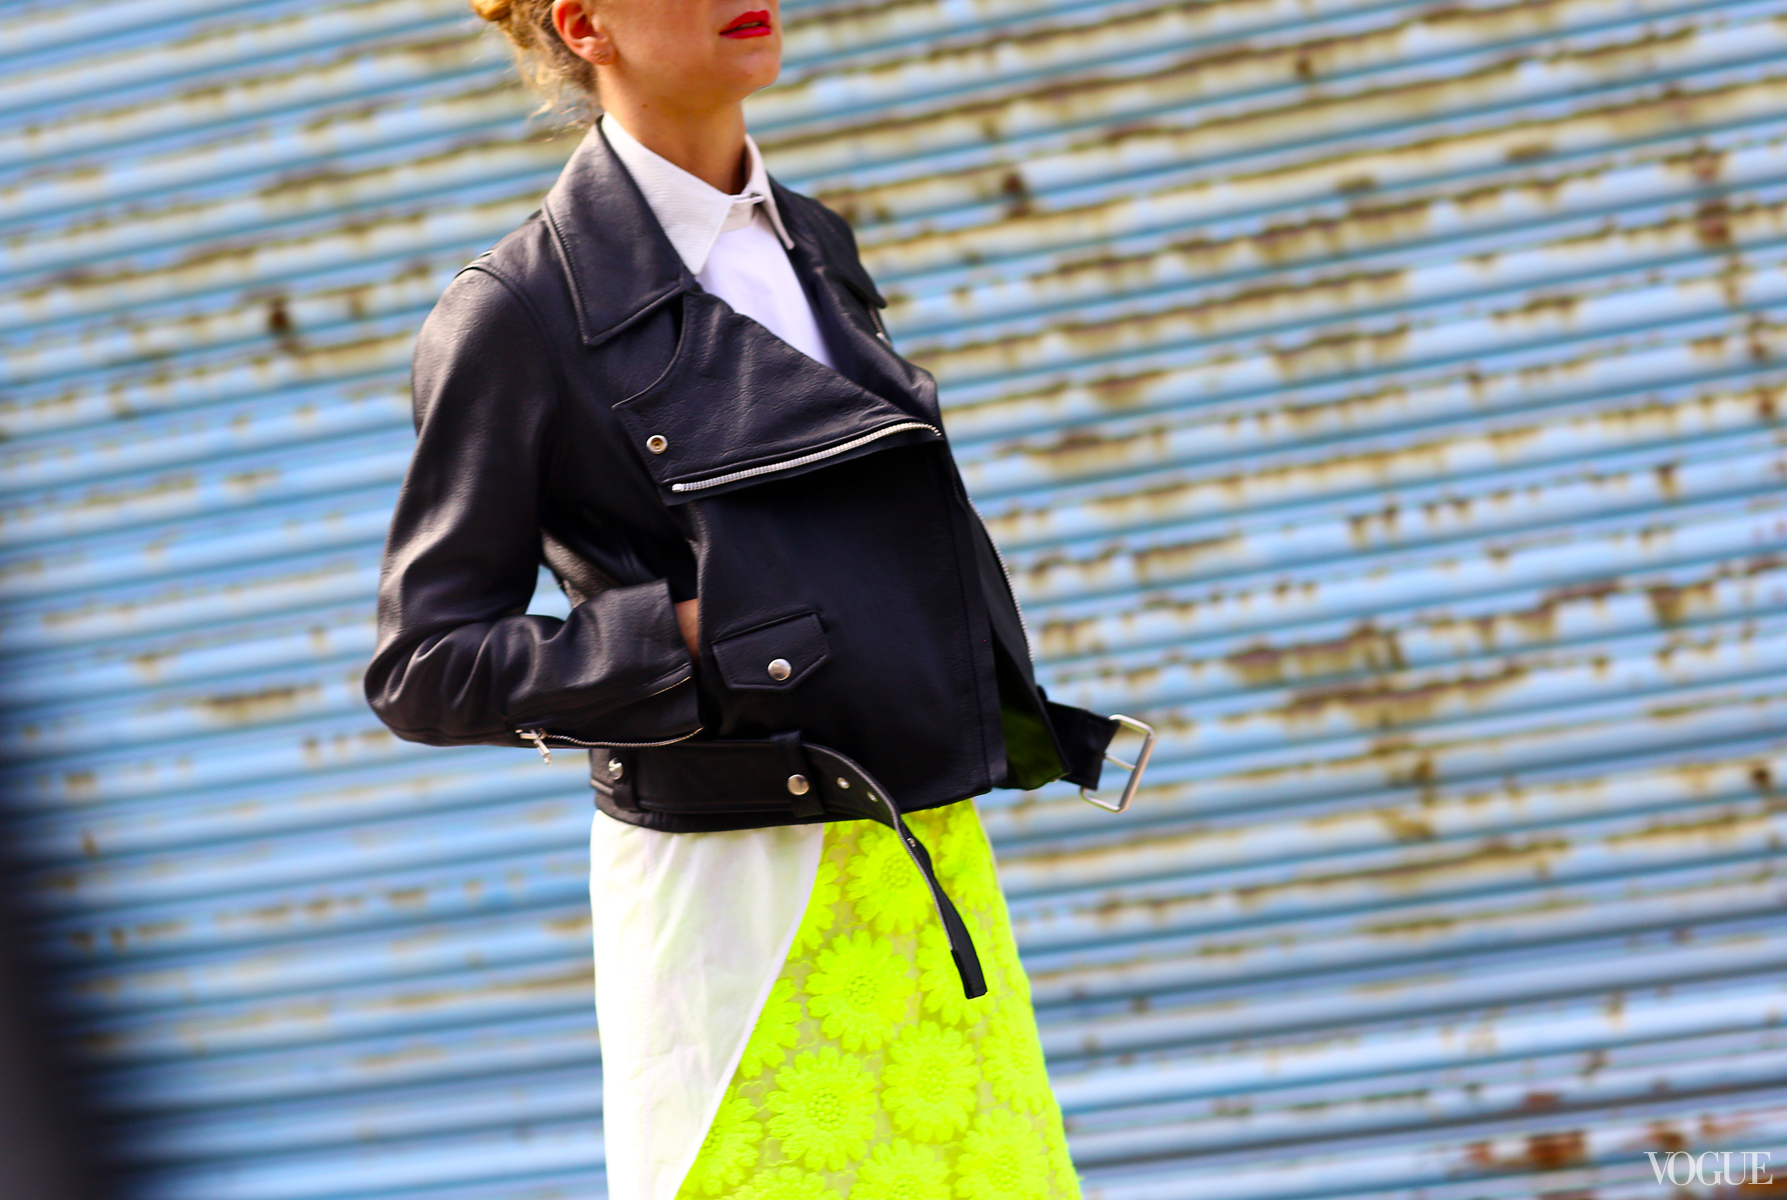 street style neon Dresses That Make Your Eyes Hurt!?